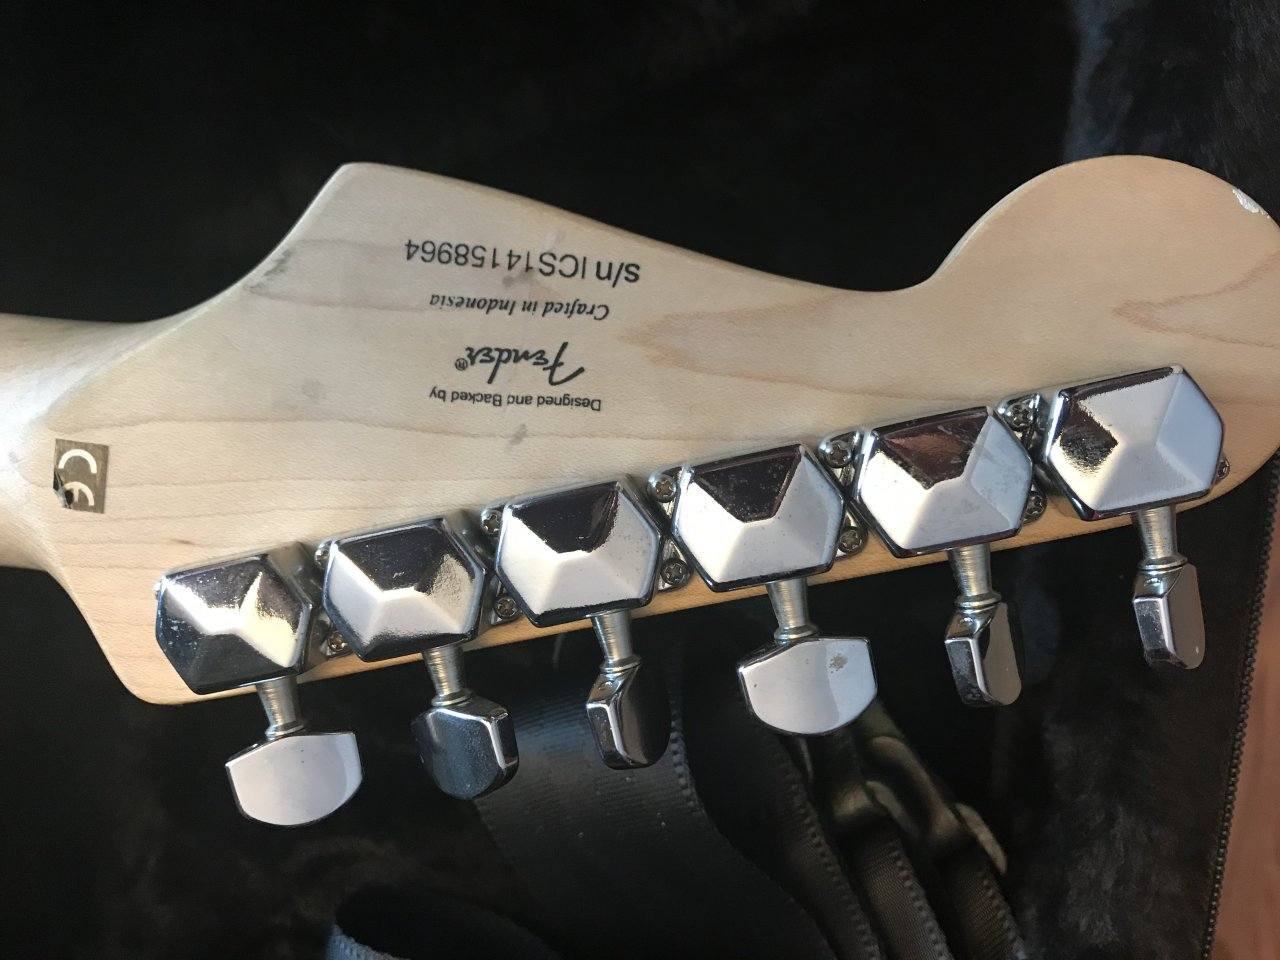 I Have A Fender Squier Bullet Stray That Is Crafted In